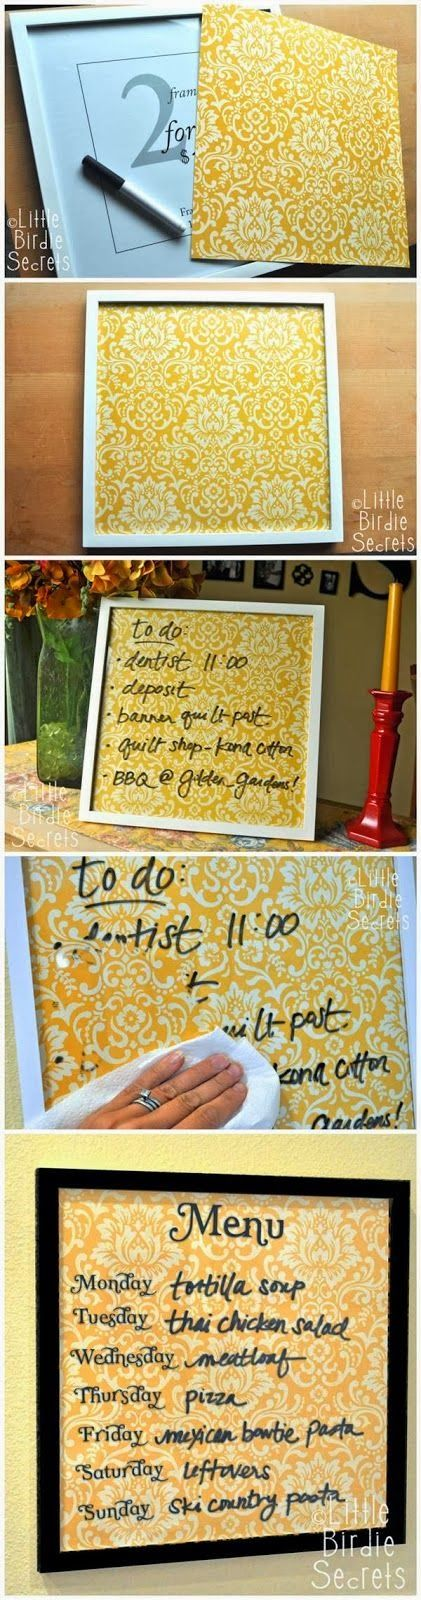 Make an attractive wipe board with a frame and scrapbook paper. Weekly meal planner, to-do list, leaving notes...